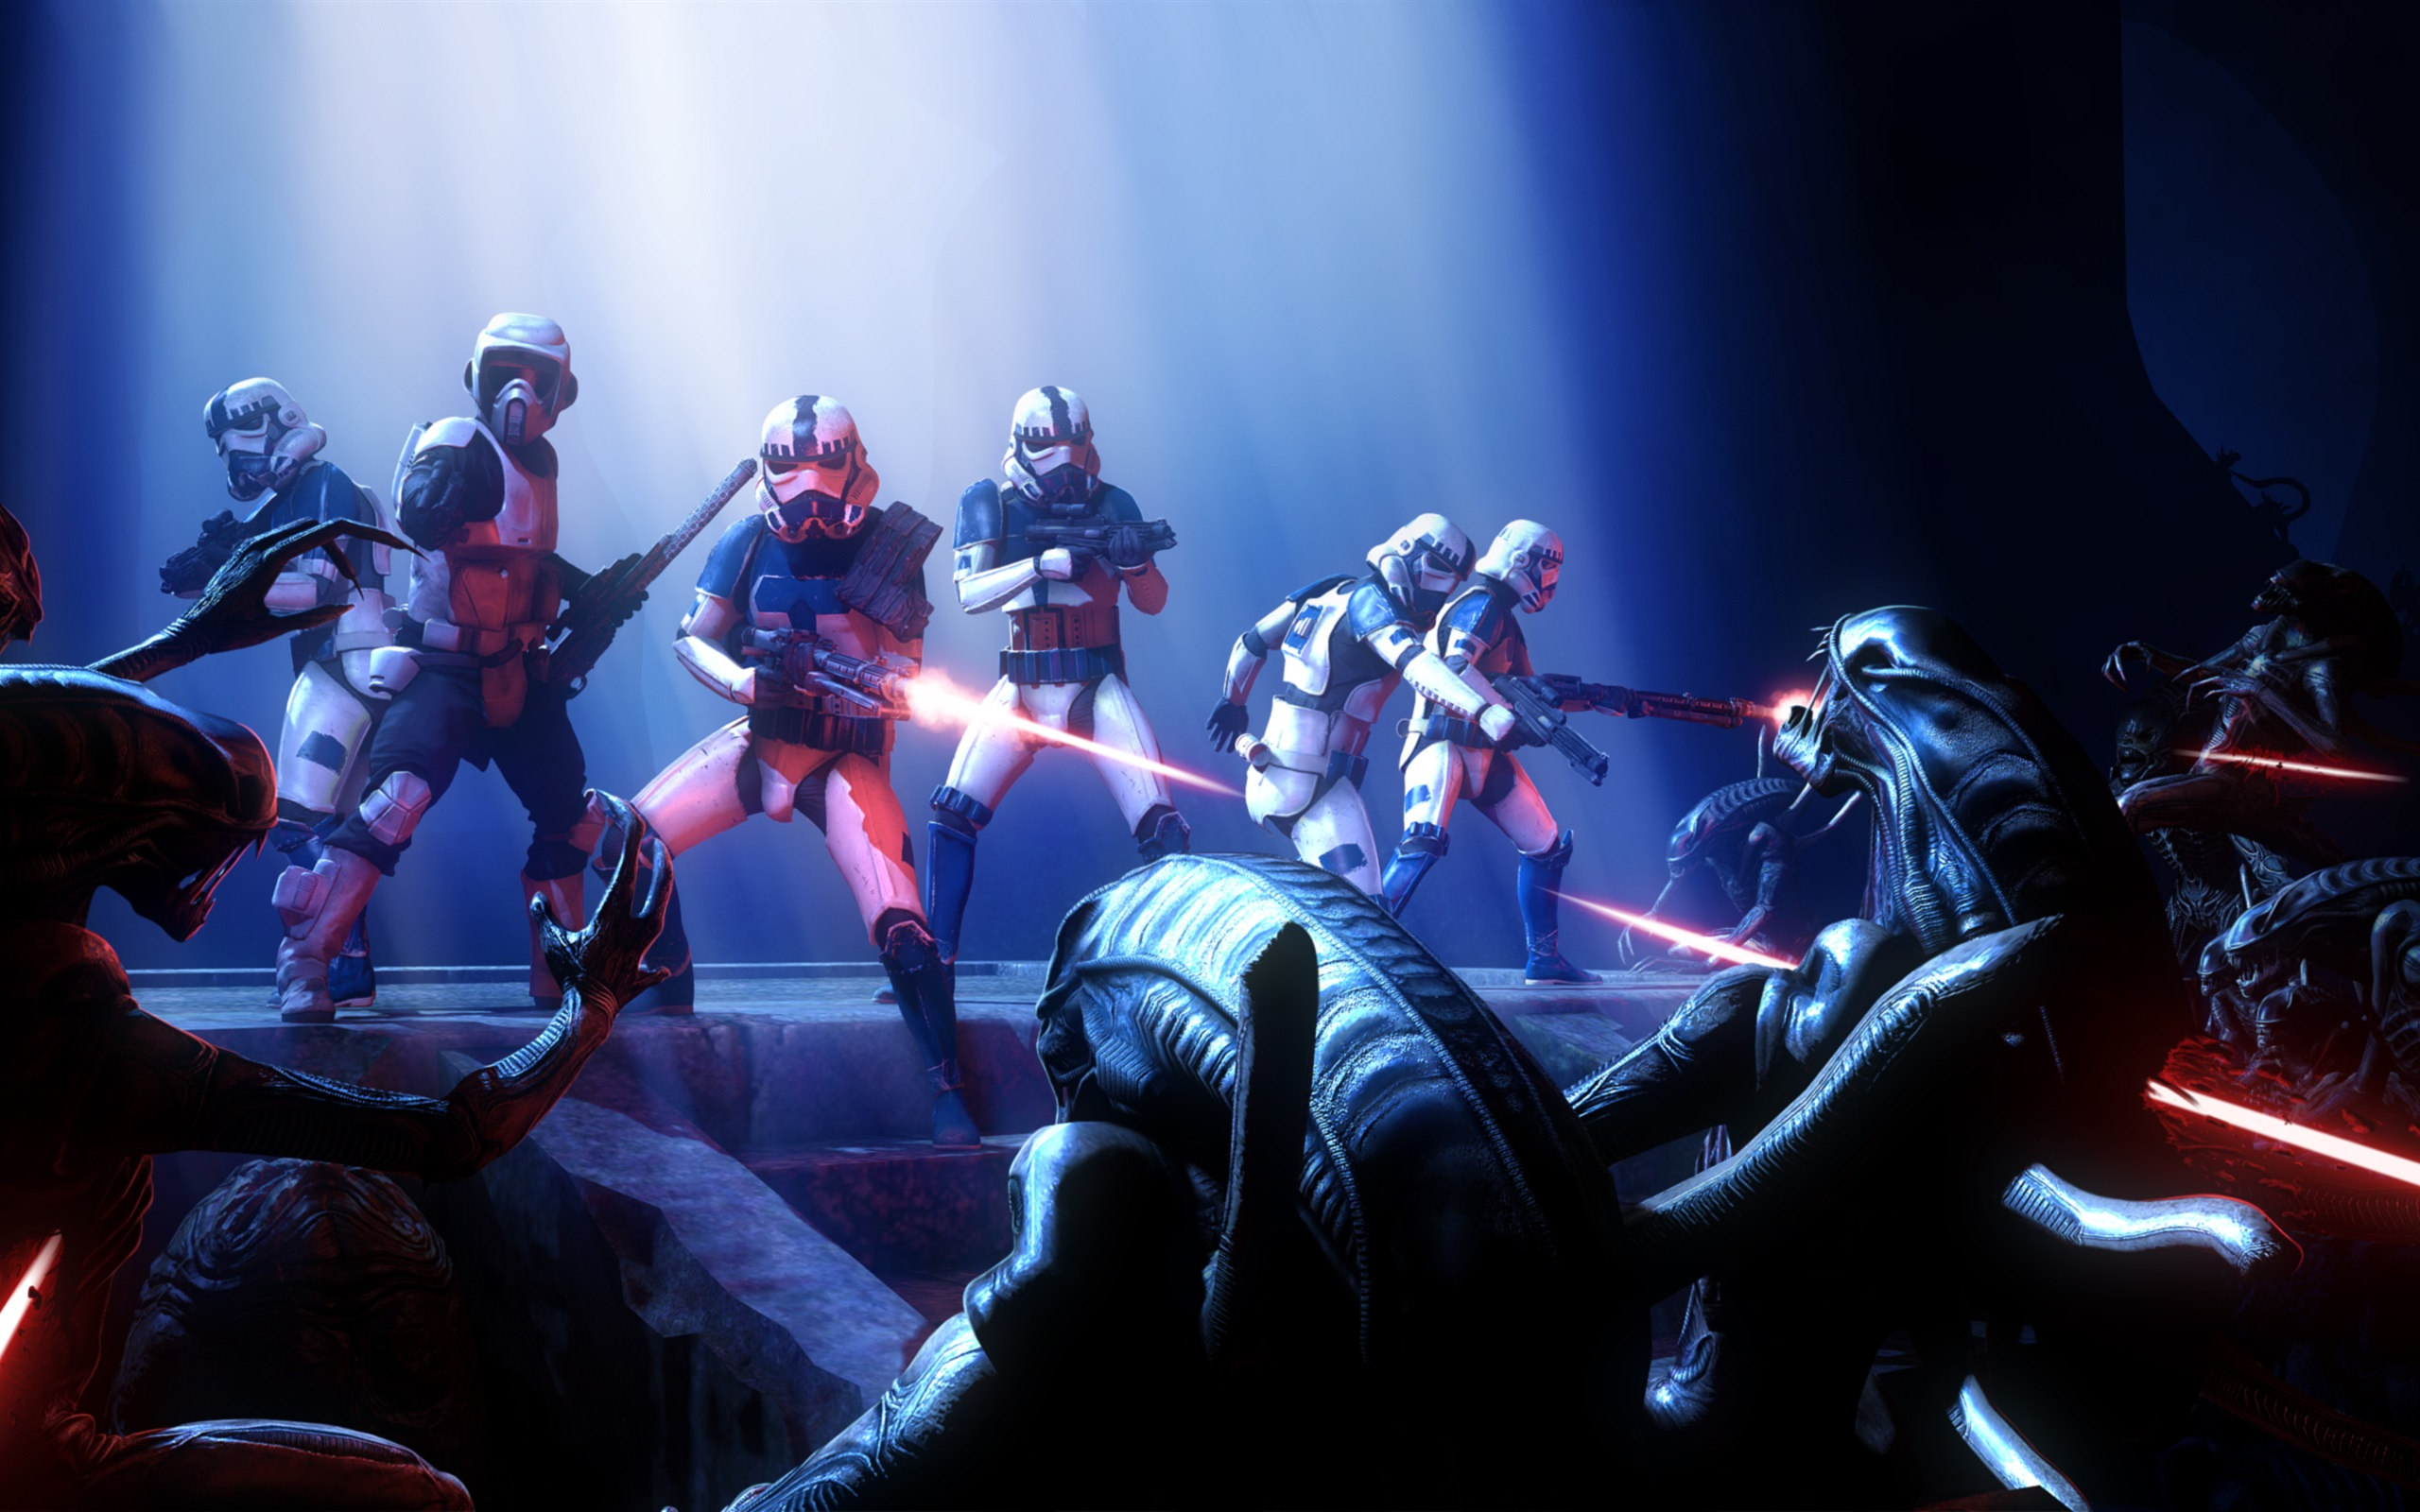 Wallpaper Star Wars Alien Pc Games 2560x1600 Hd Picture Image